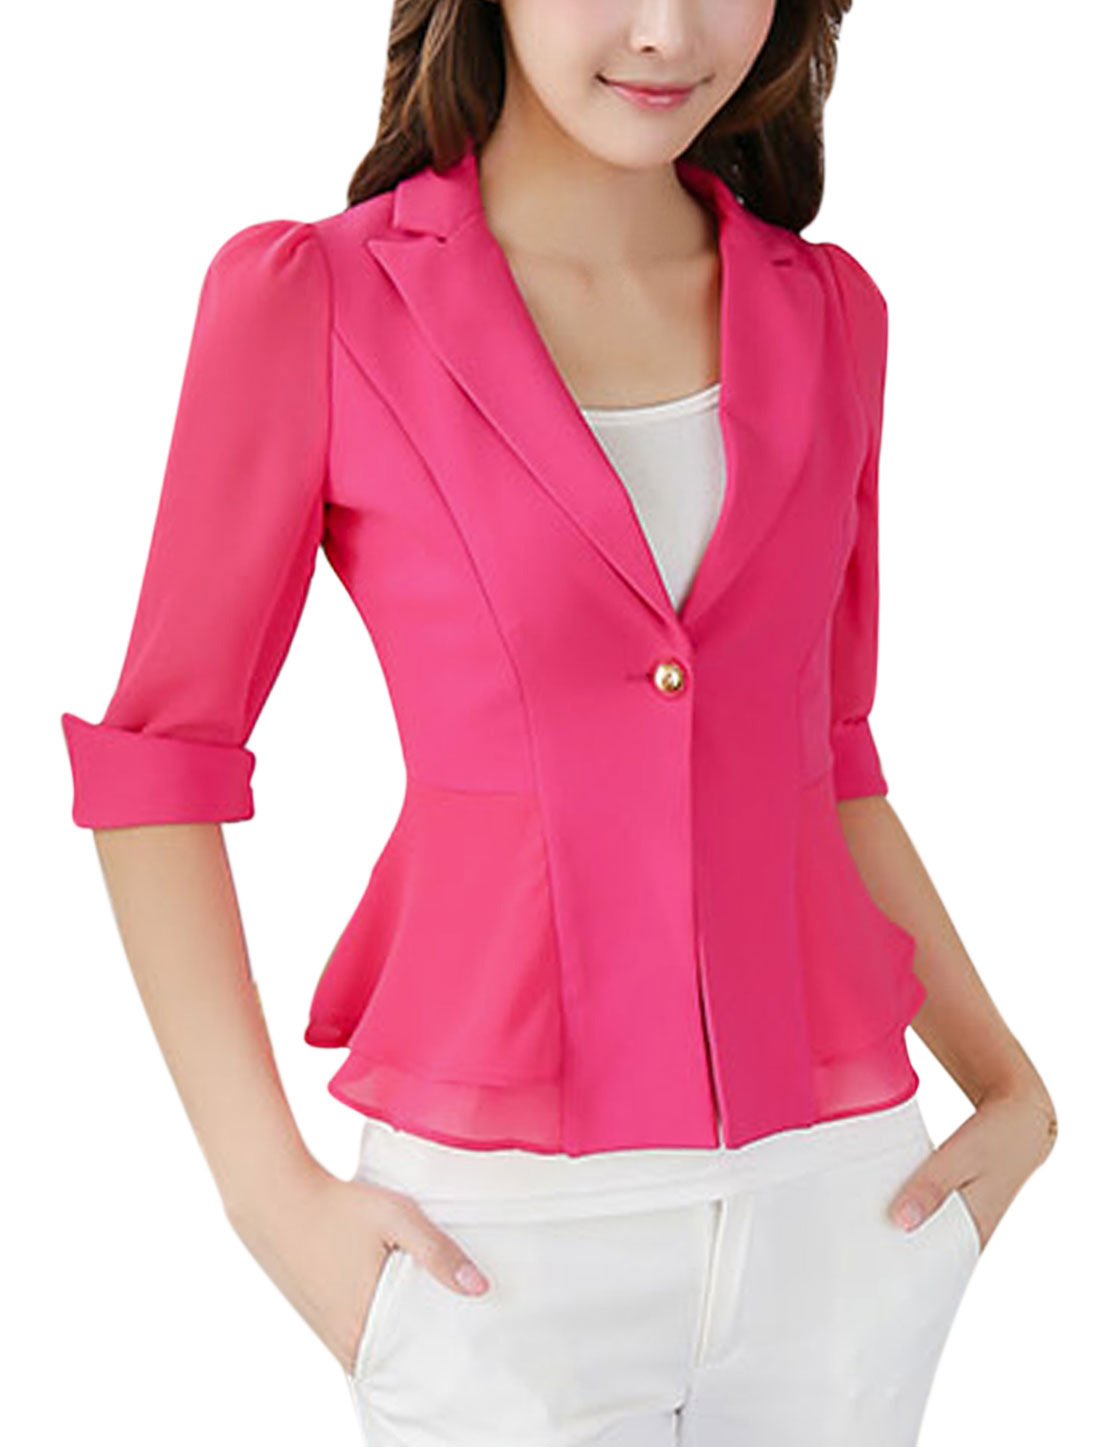 New Style Slim Fit Notched Lapel Chiffon Panel Blazer Jacket for Lady Fuchsia